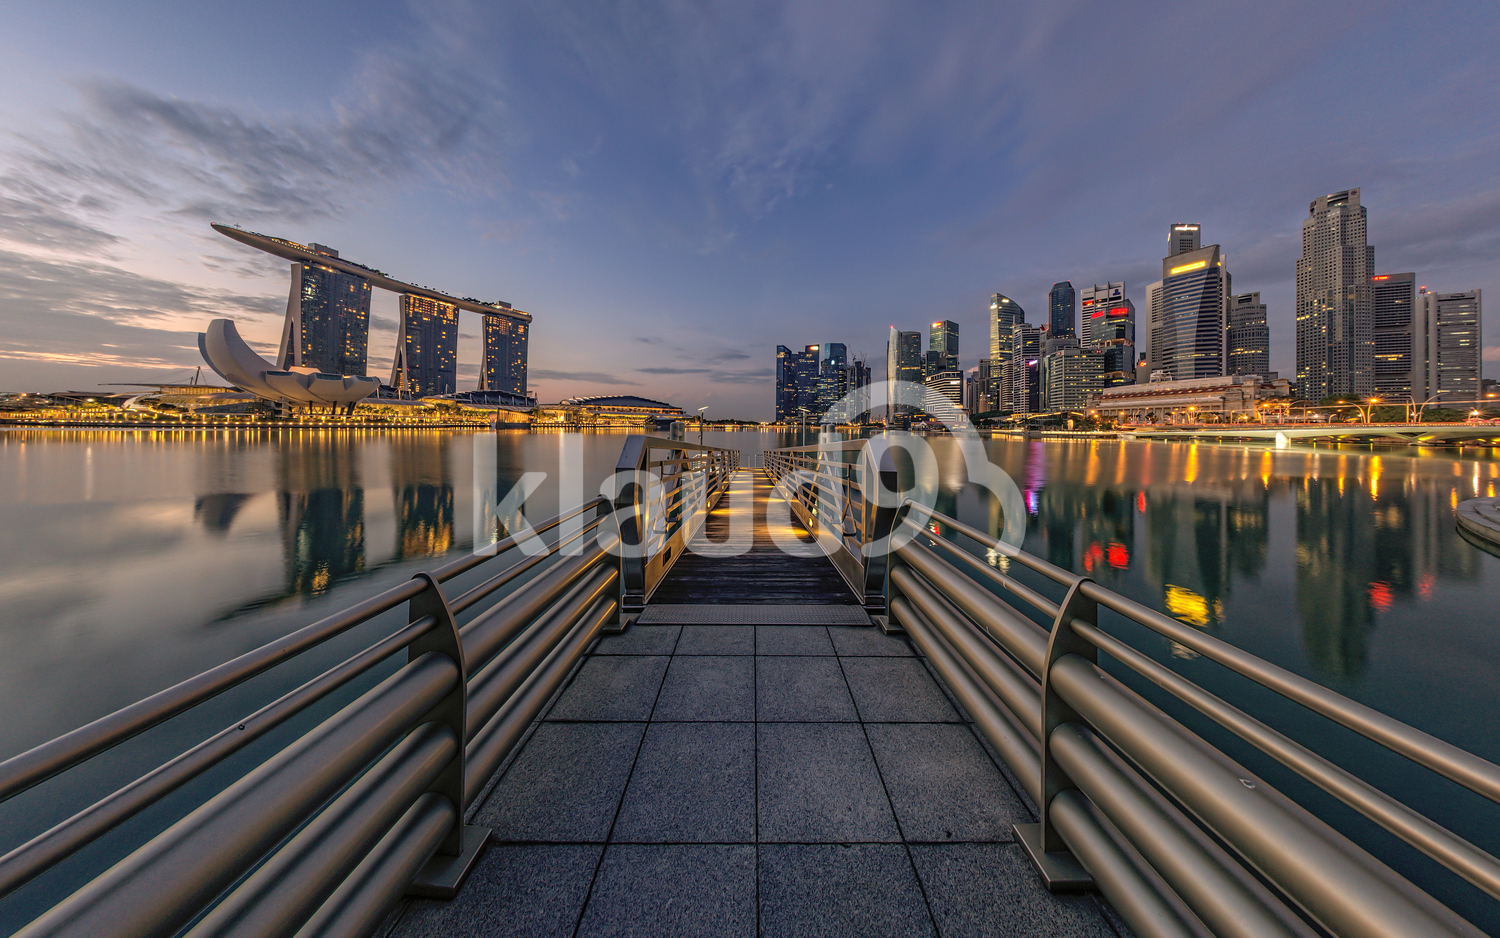 Shenton Way & MBS at Blue Hour